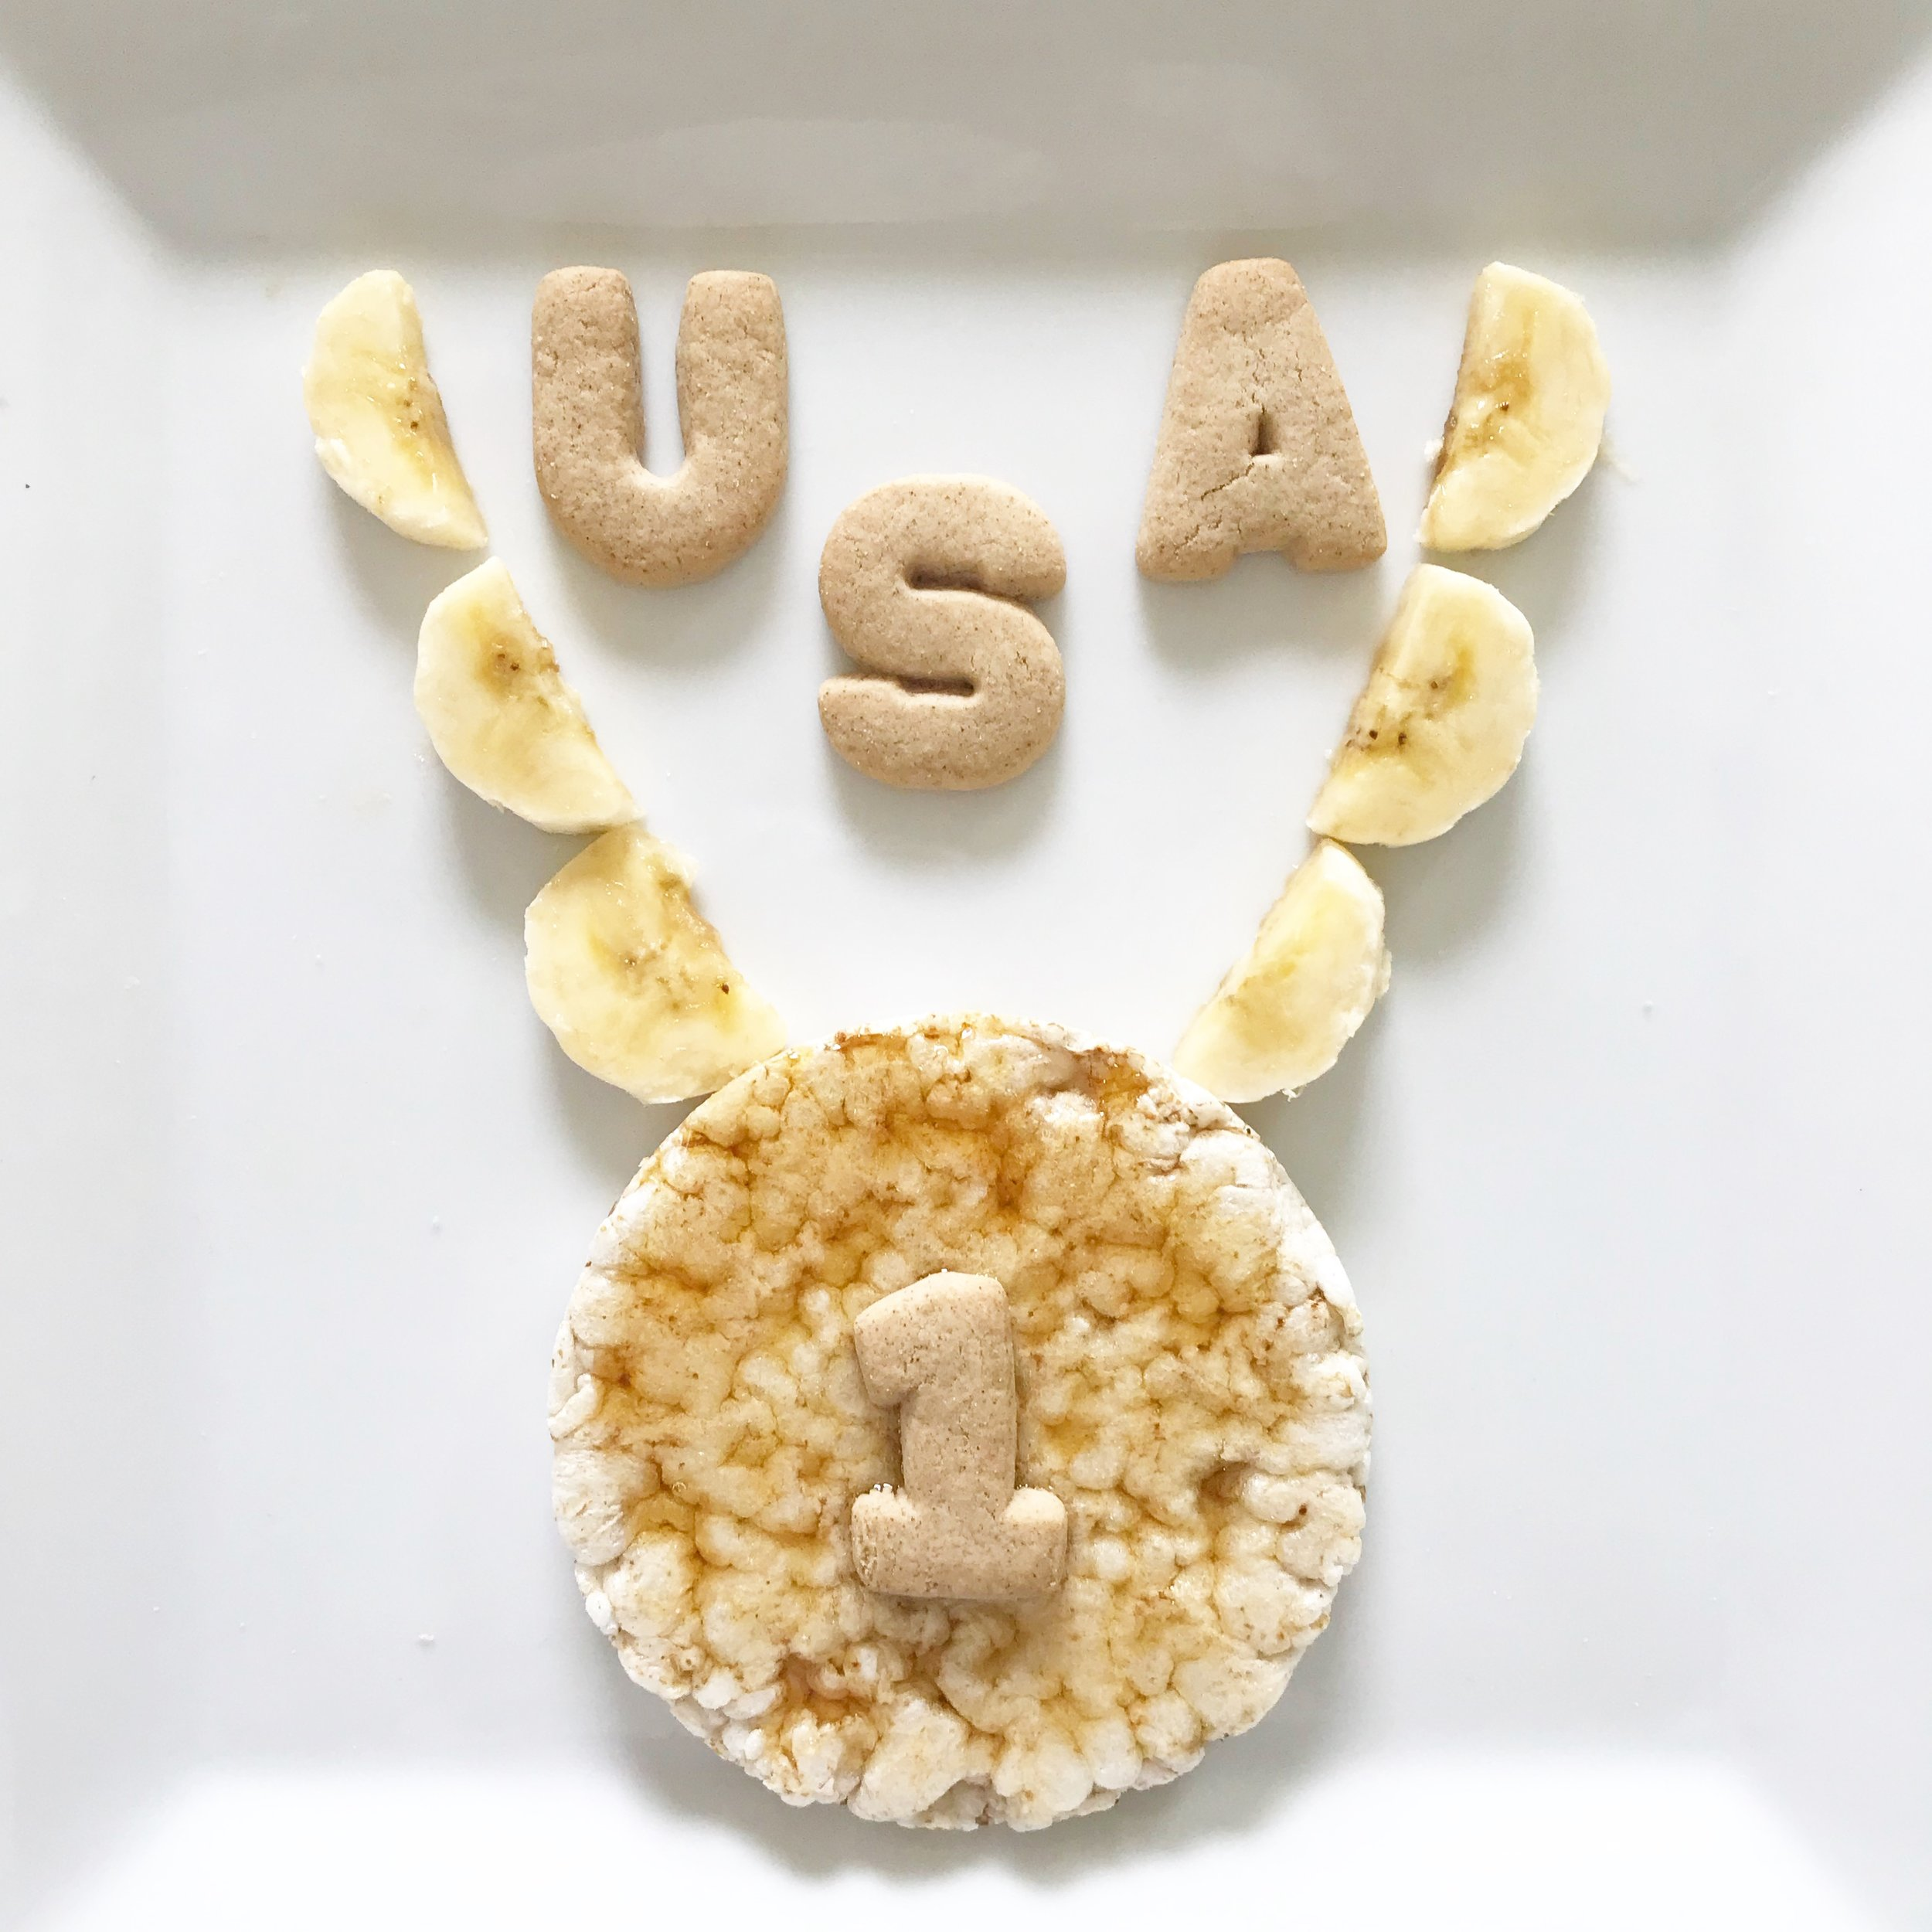 + Rice cake + honey (to make it gold)  +Sliced banana for necklace  + Number cookies for #1 + Letter cookies for USA